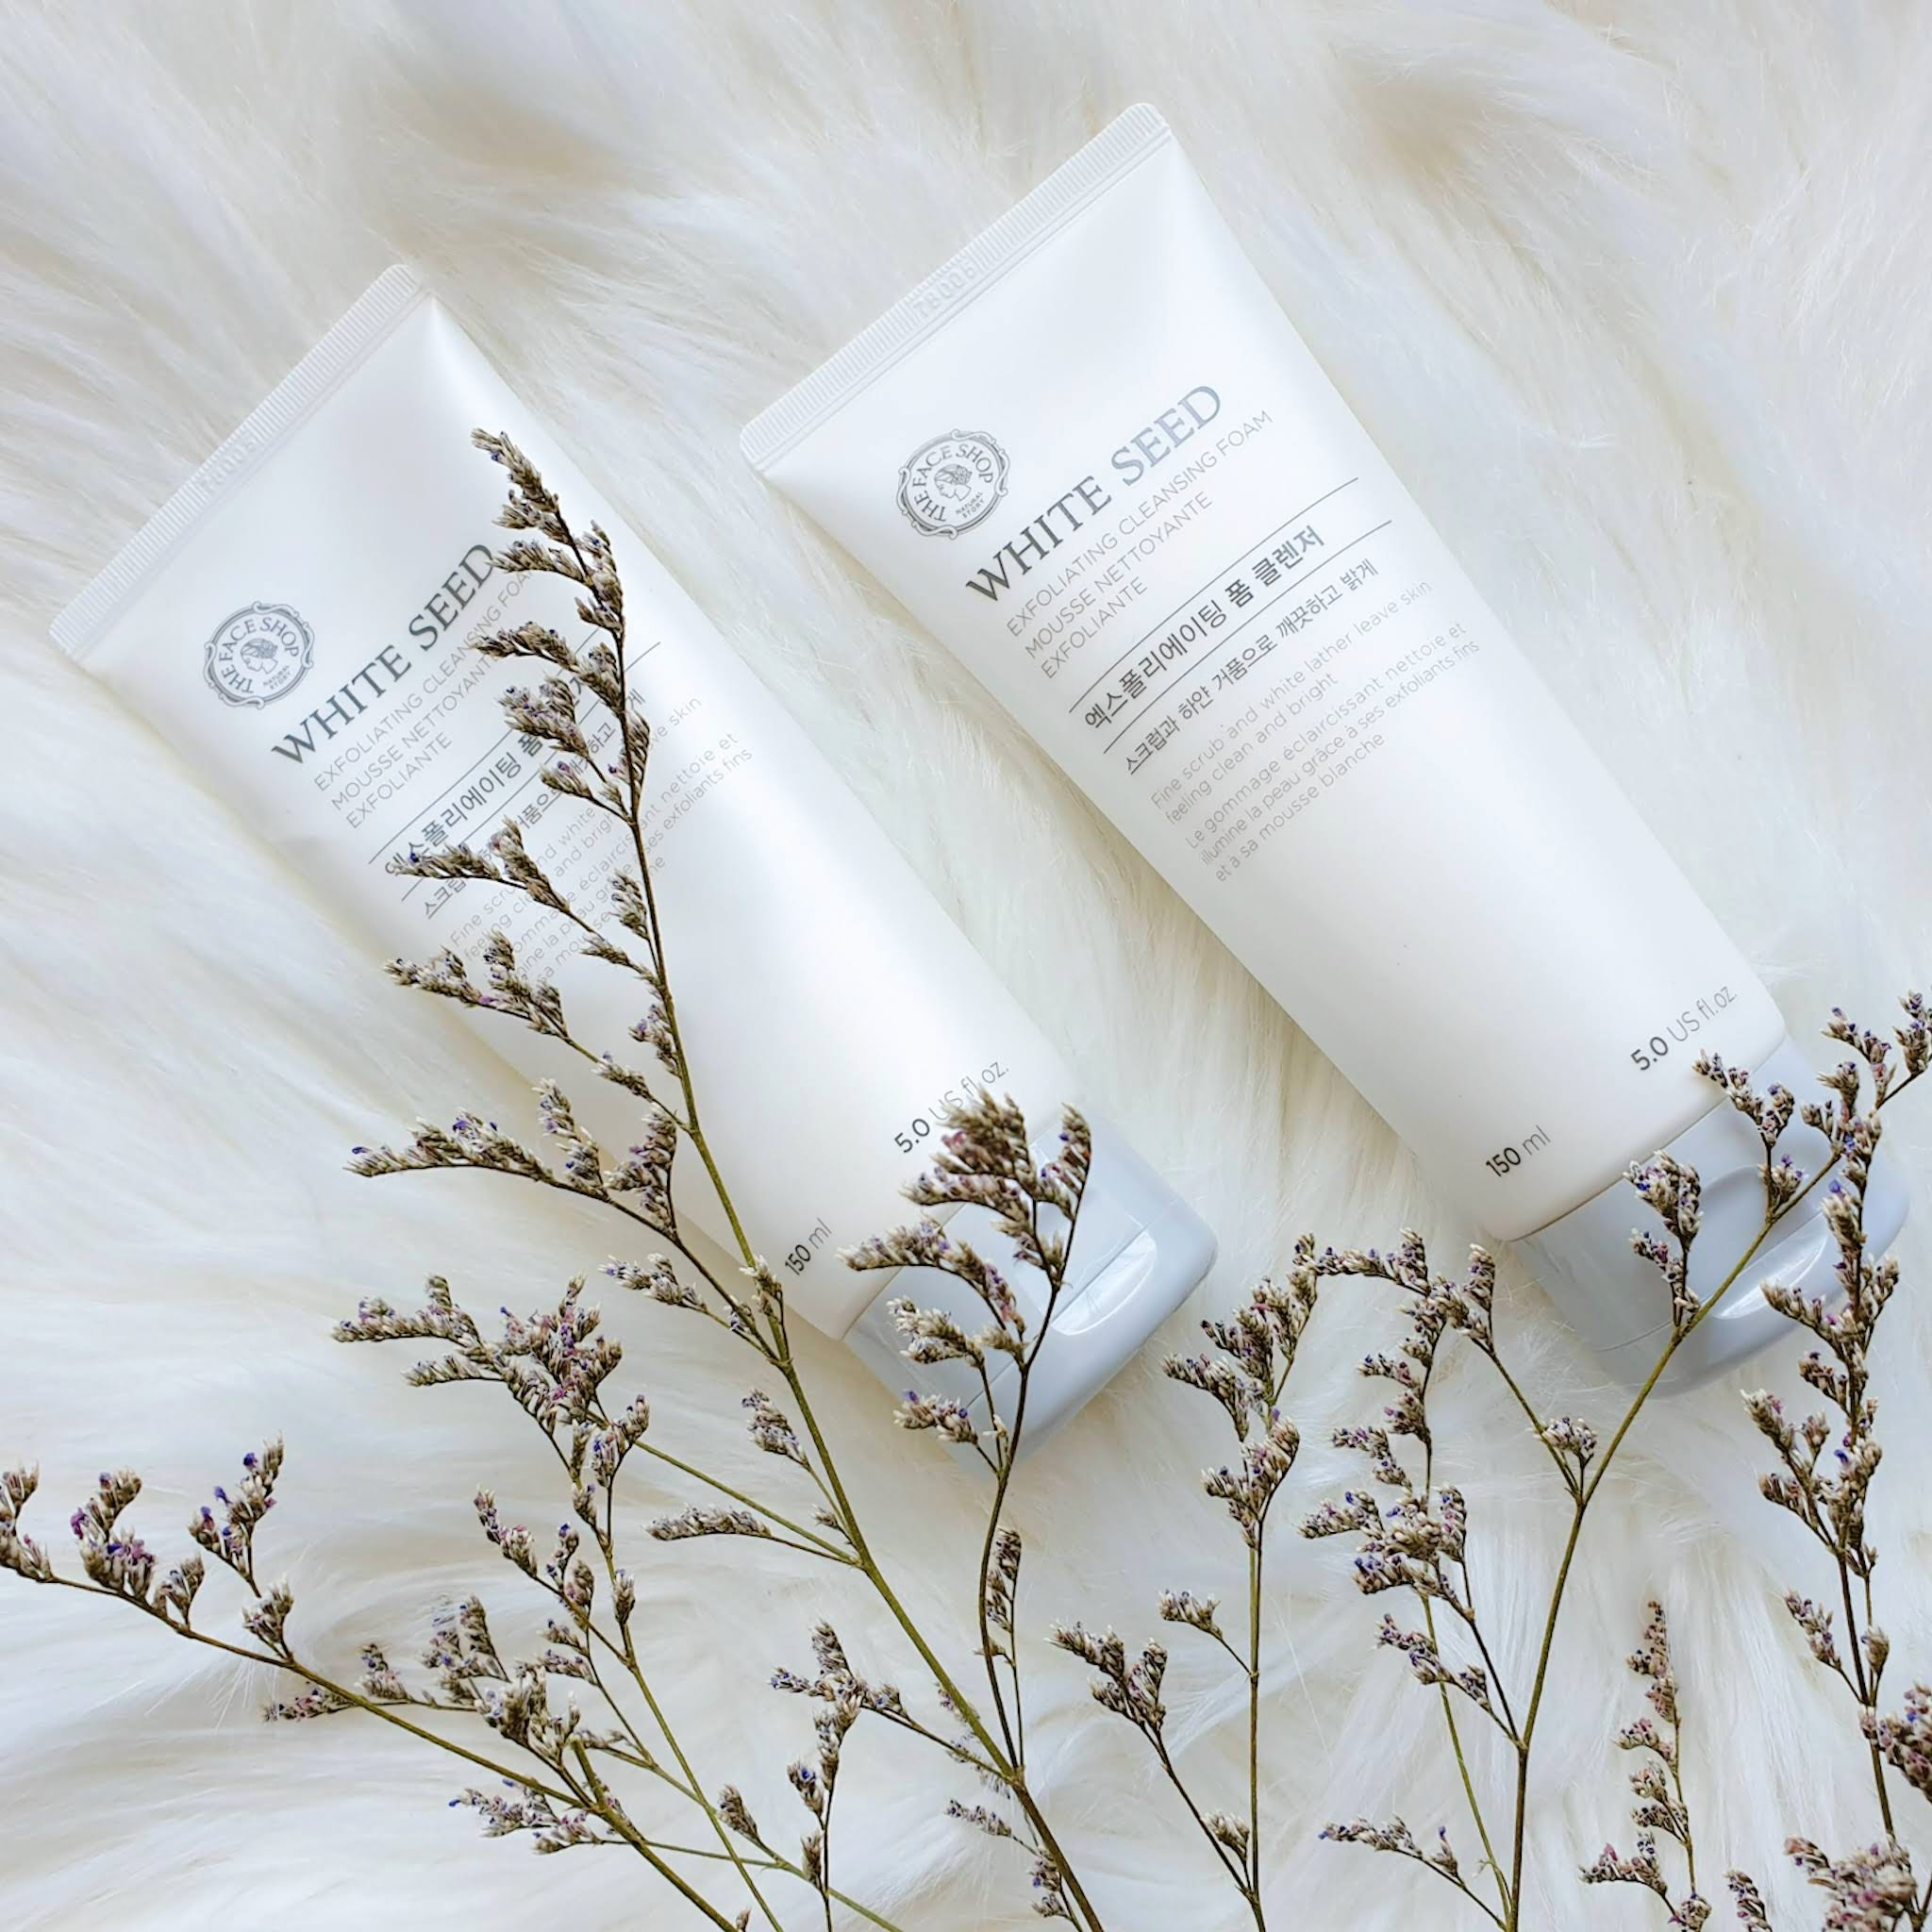 THE FACE SHOP White Seed Exfoliating Cleansing Foam | Review